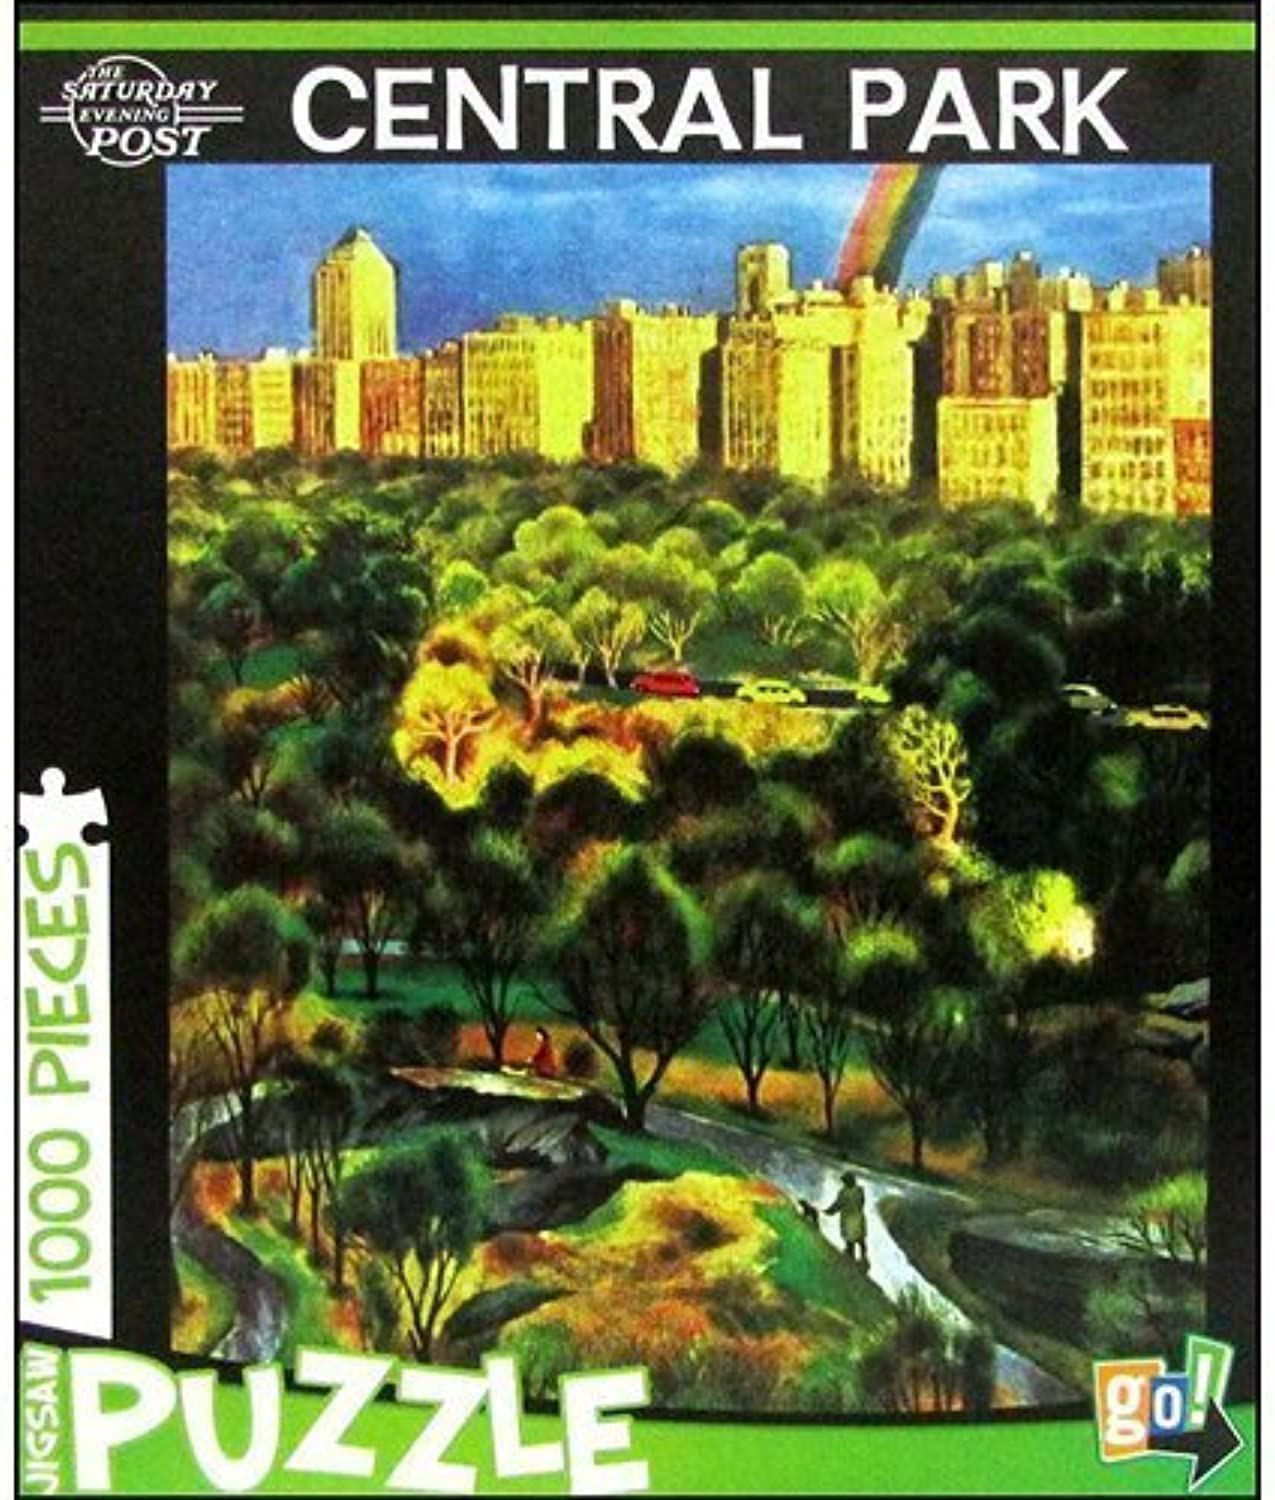 Saturday Evening Post Central Park 1000 Piece Puzzle by Go  Games by Go Games